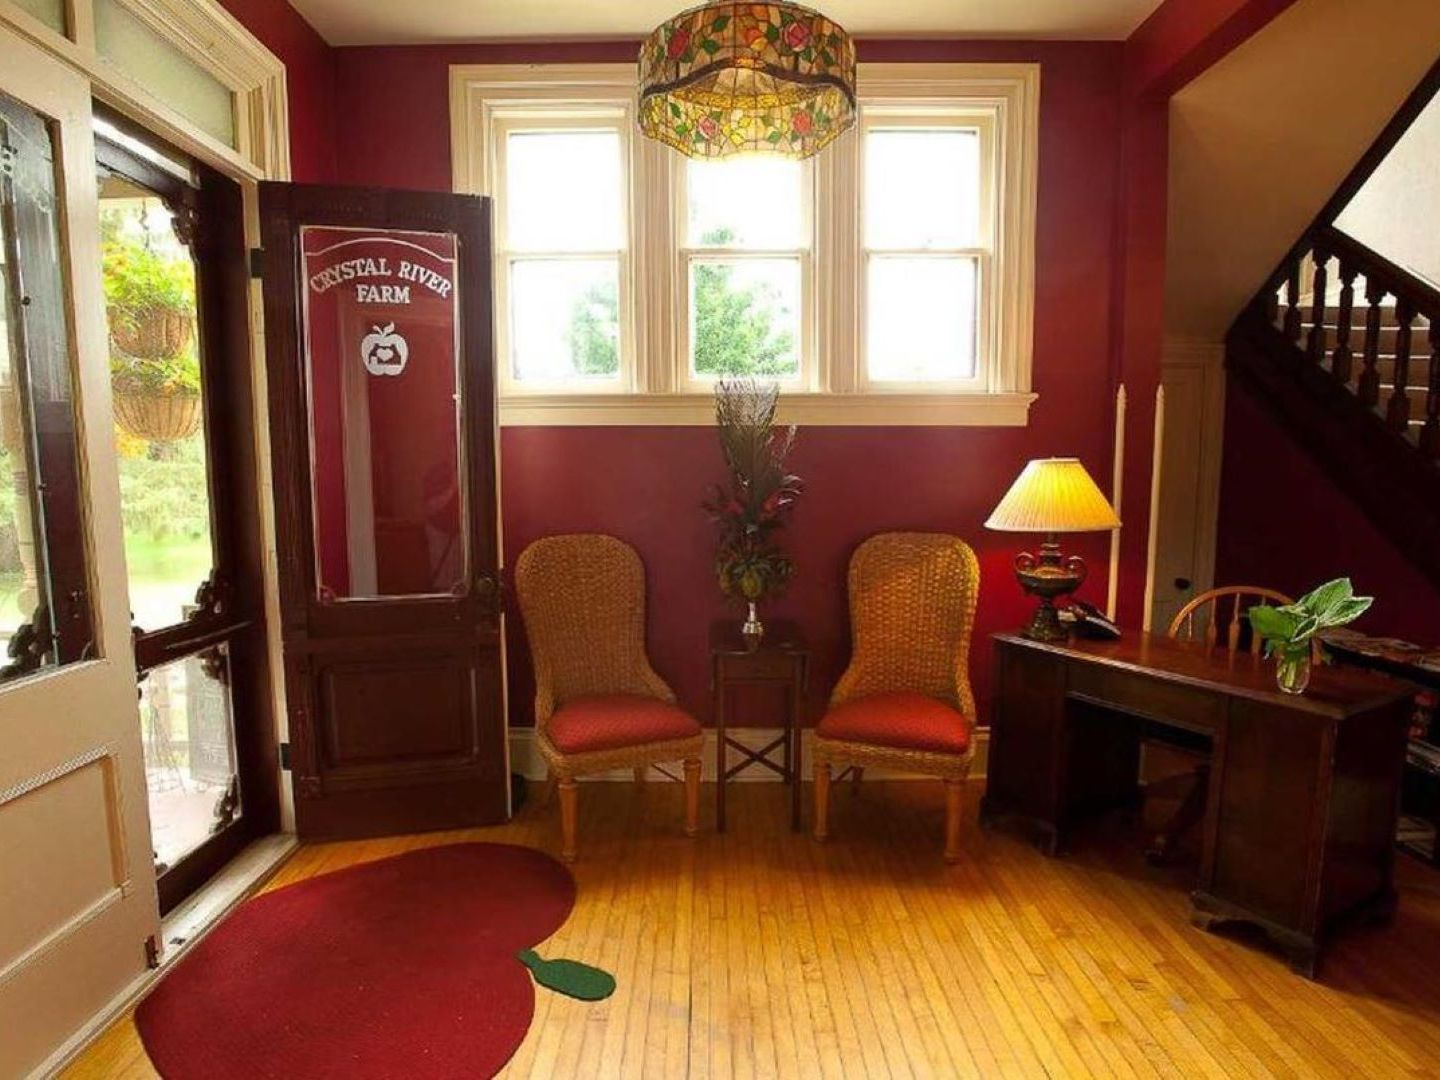 A large red chair in a living room filled with furniture and a window at Apple Tree Lane Bed & Breakfast.